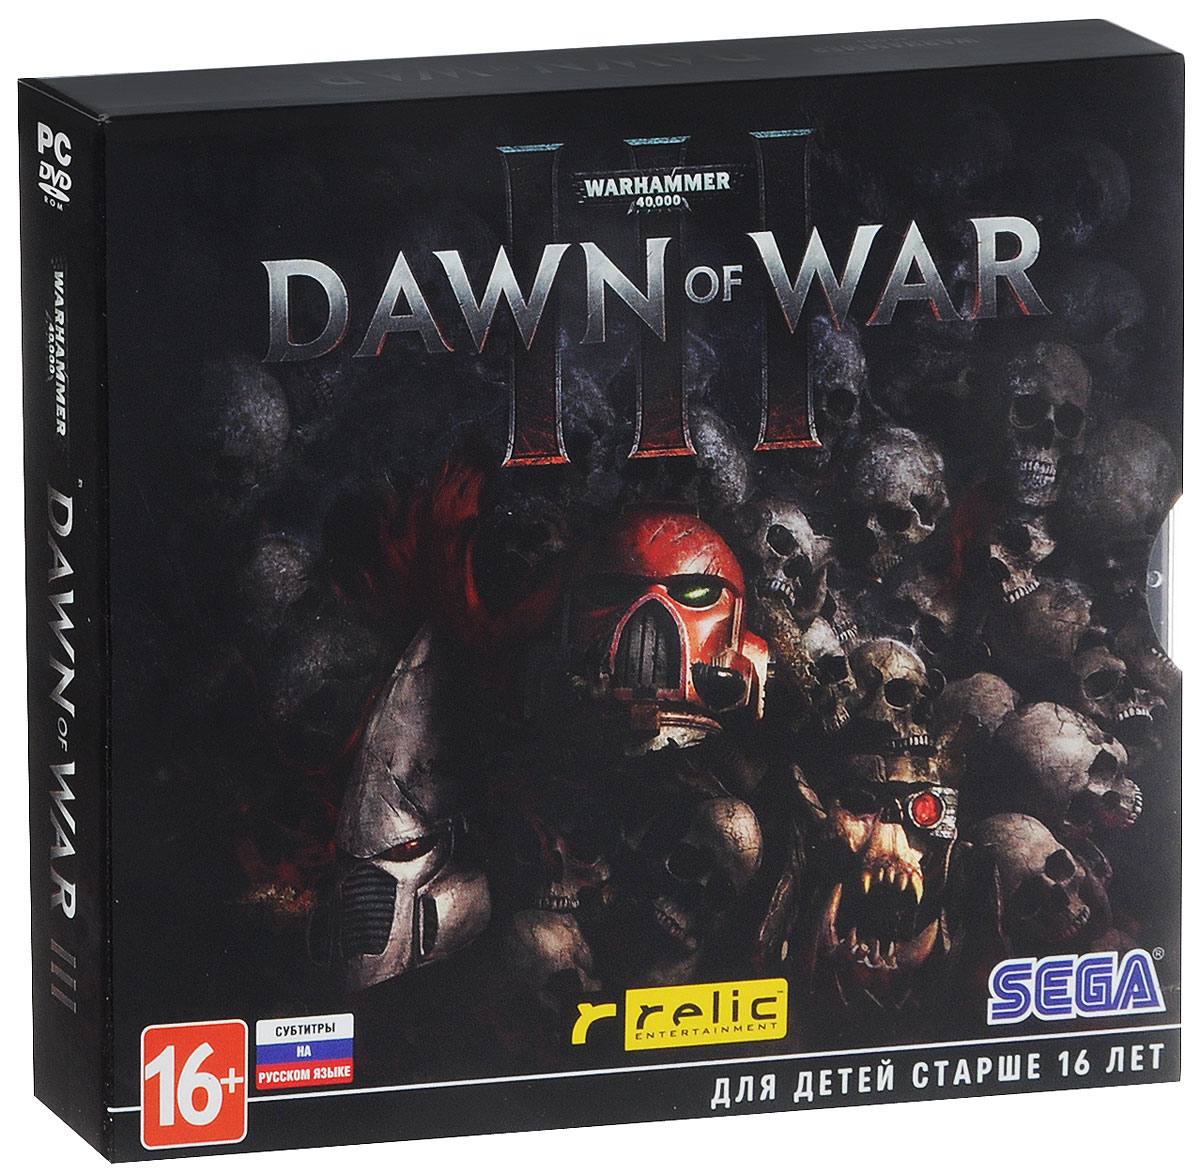 Warhammer 40,000: Dawn of War III (4 DVD)